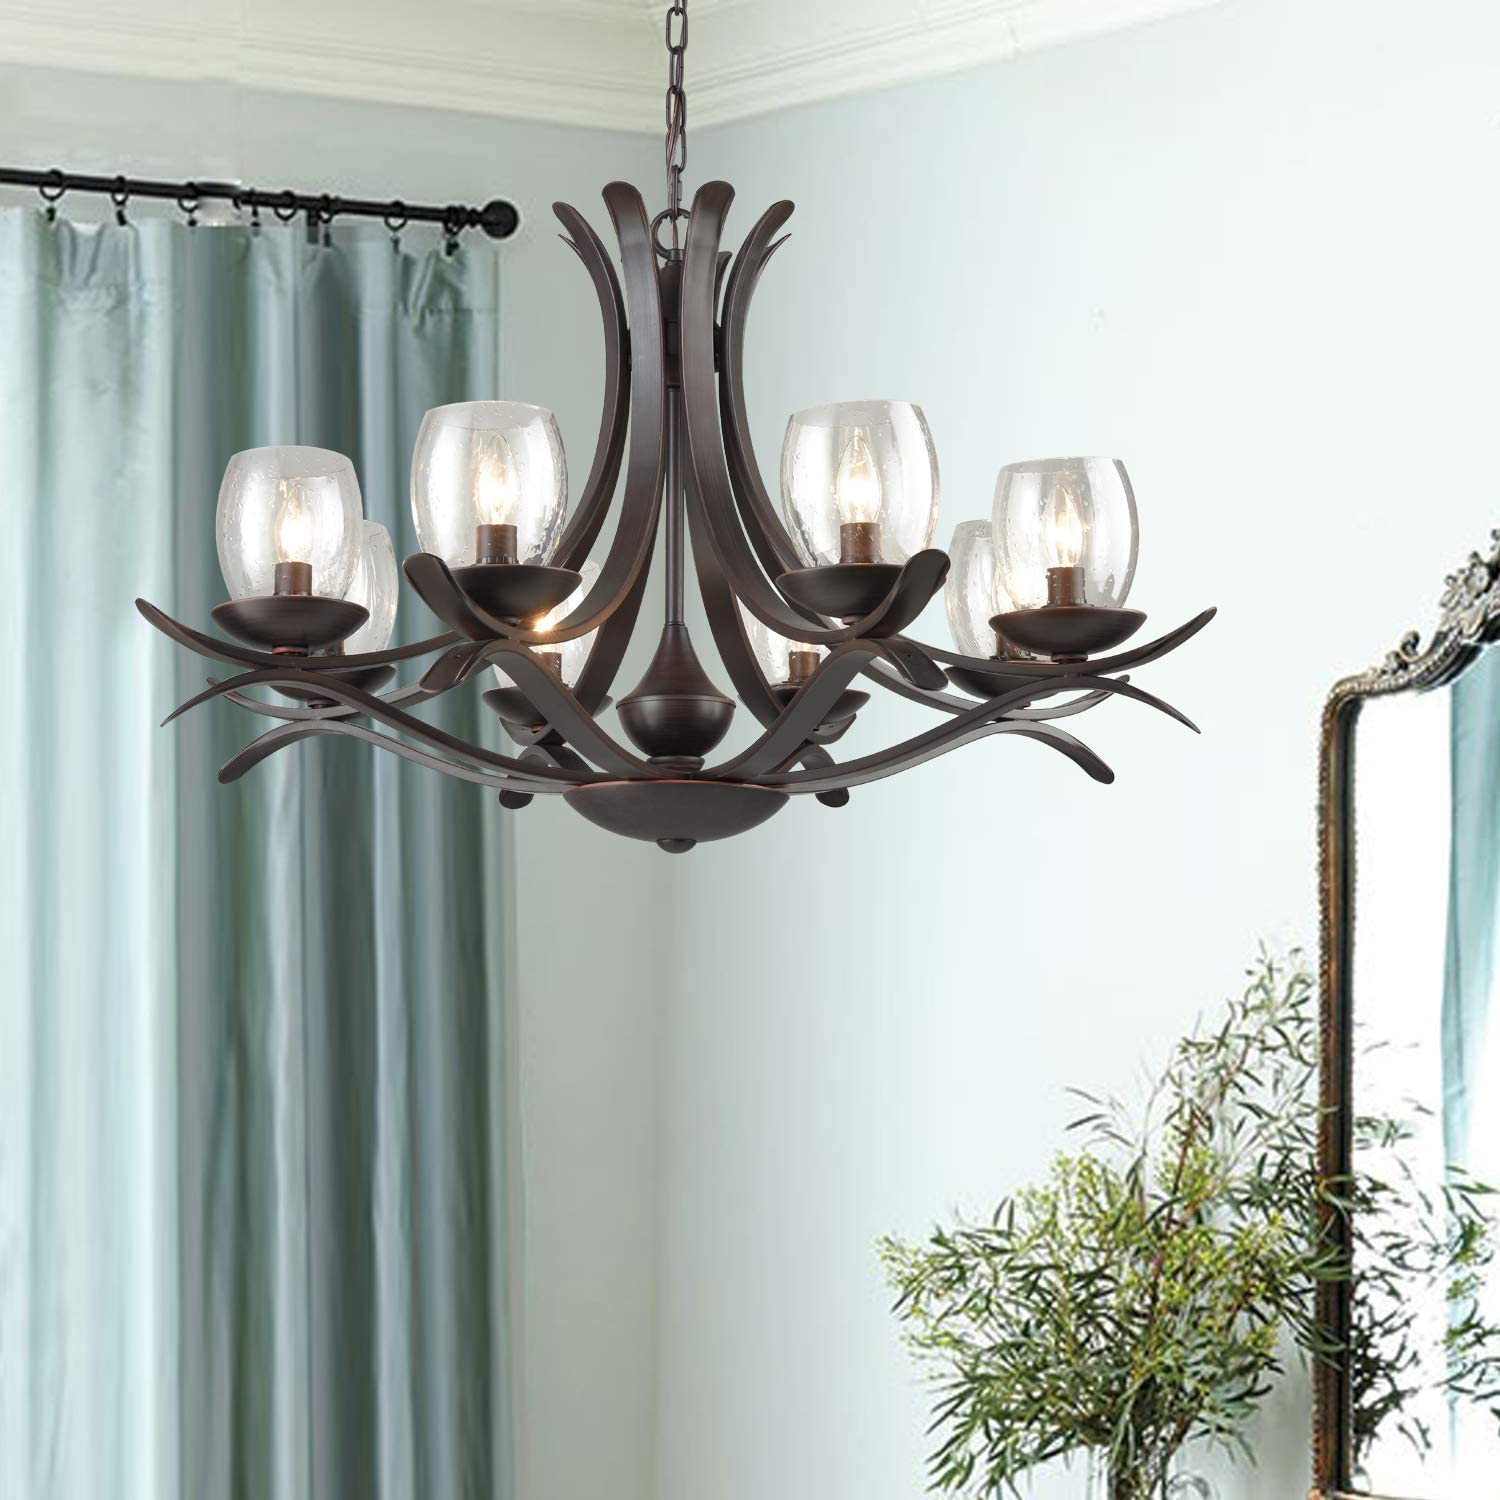 AXILAND Industrial Retrol Pendant Lighting 8-Light Chandeliers Wrought Iron Candle Hanging Lamp